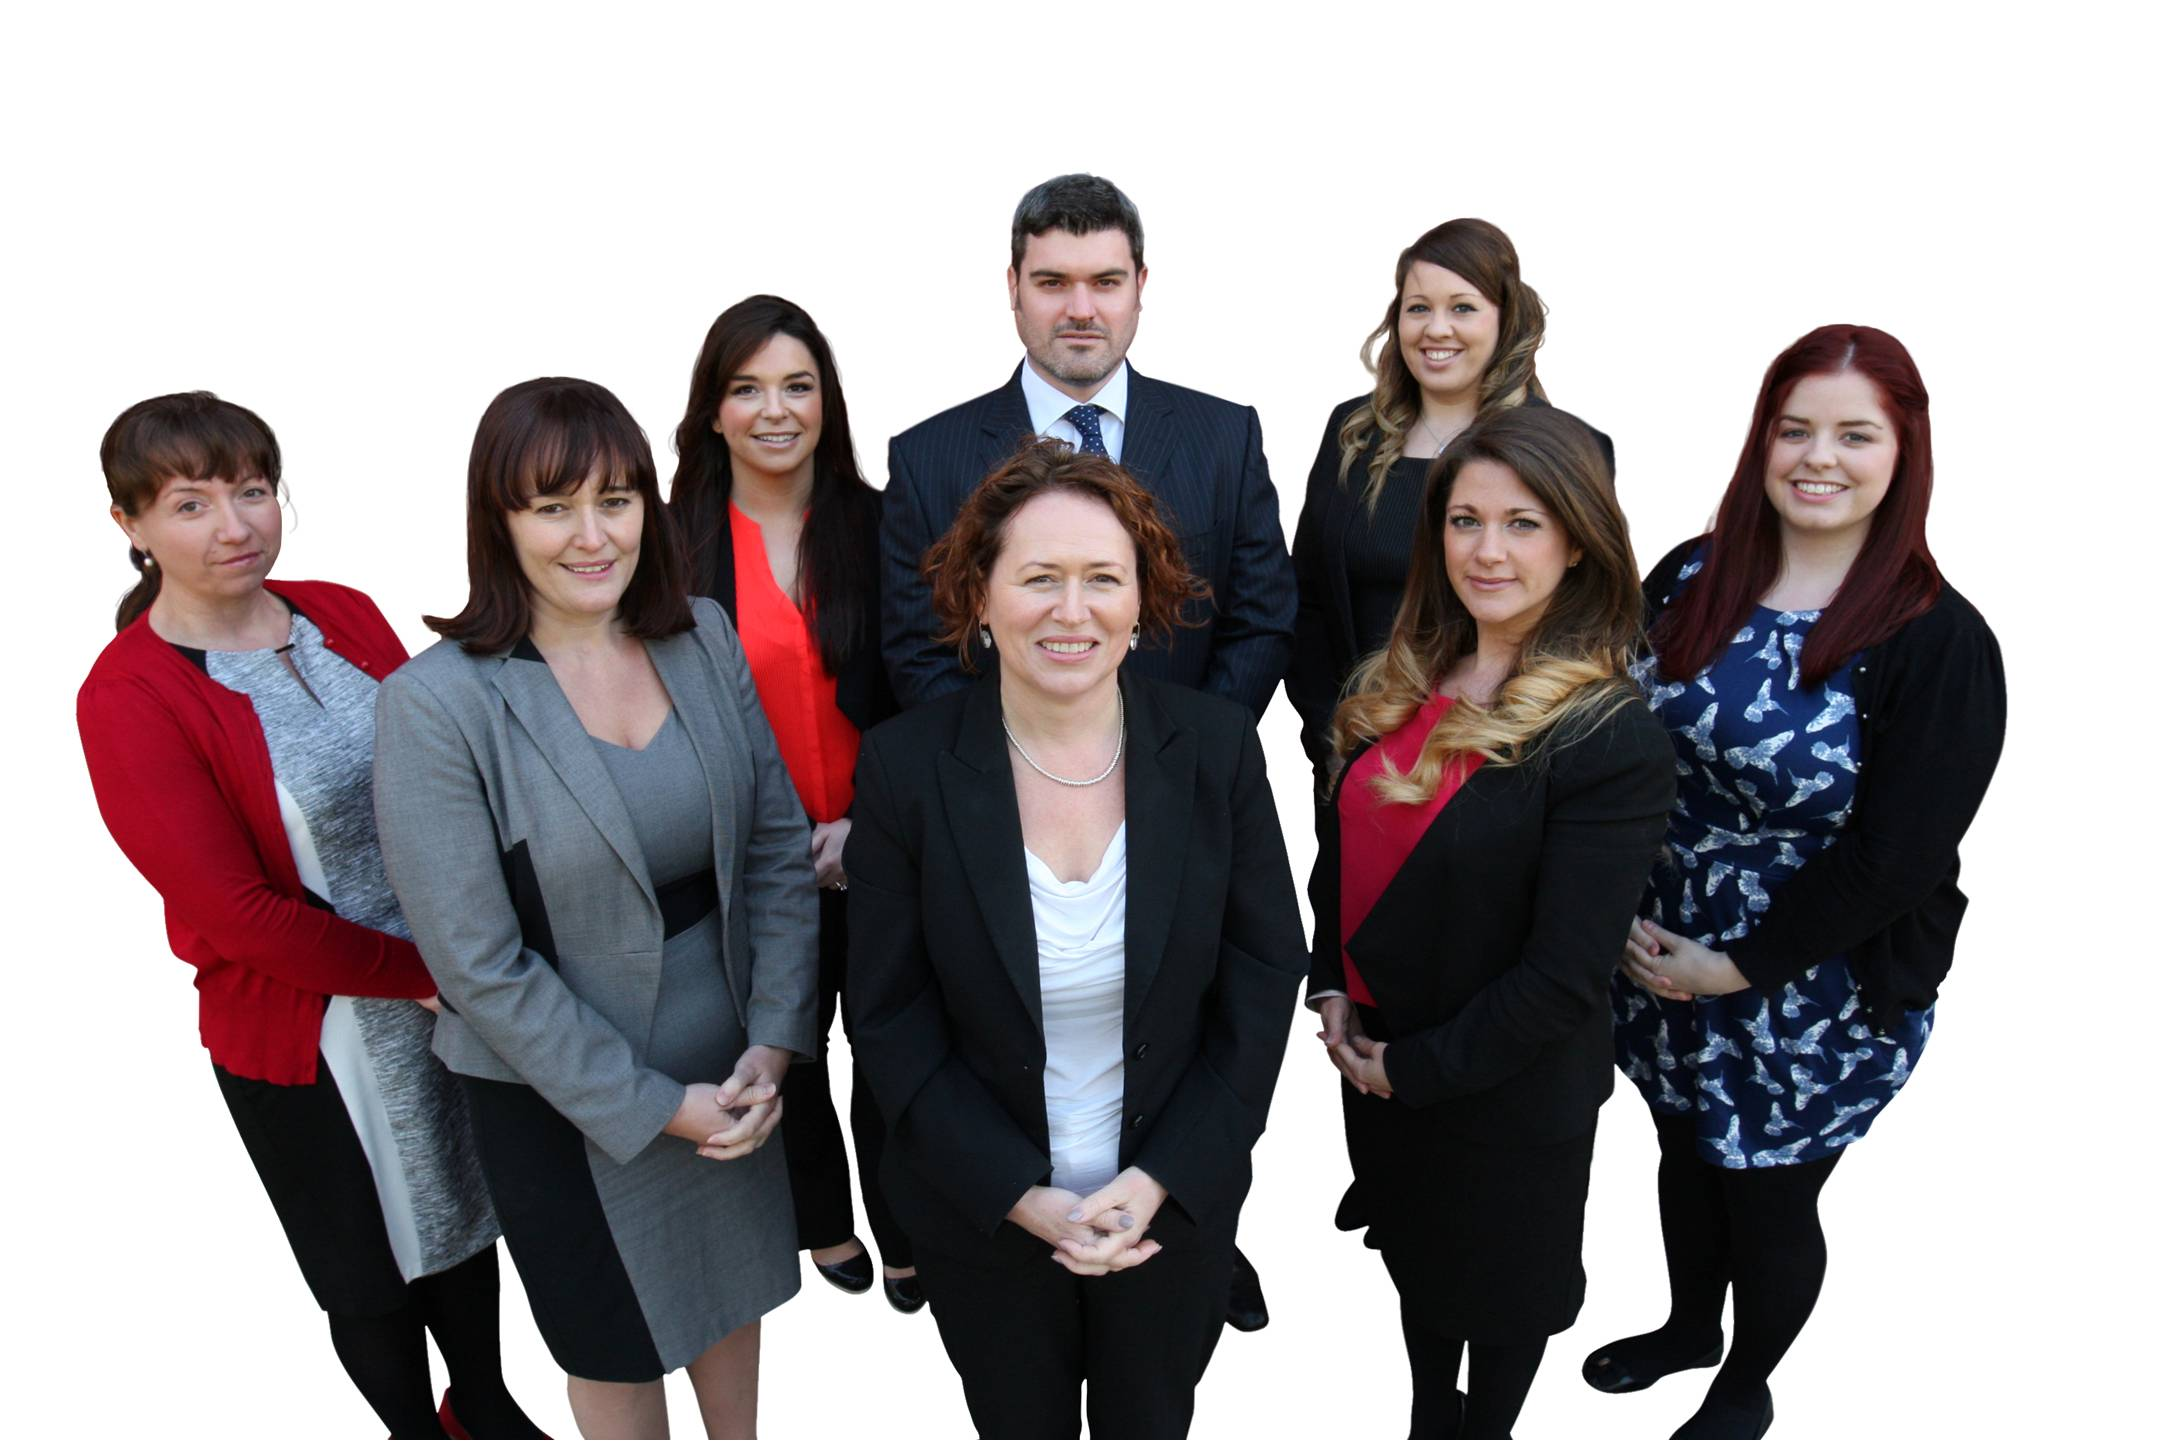 Our IBS expert team. We deal with medical negligence claims arising from IBS.